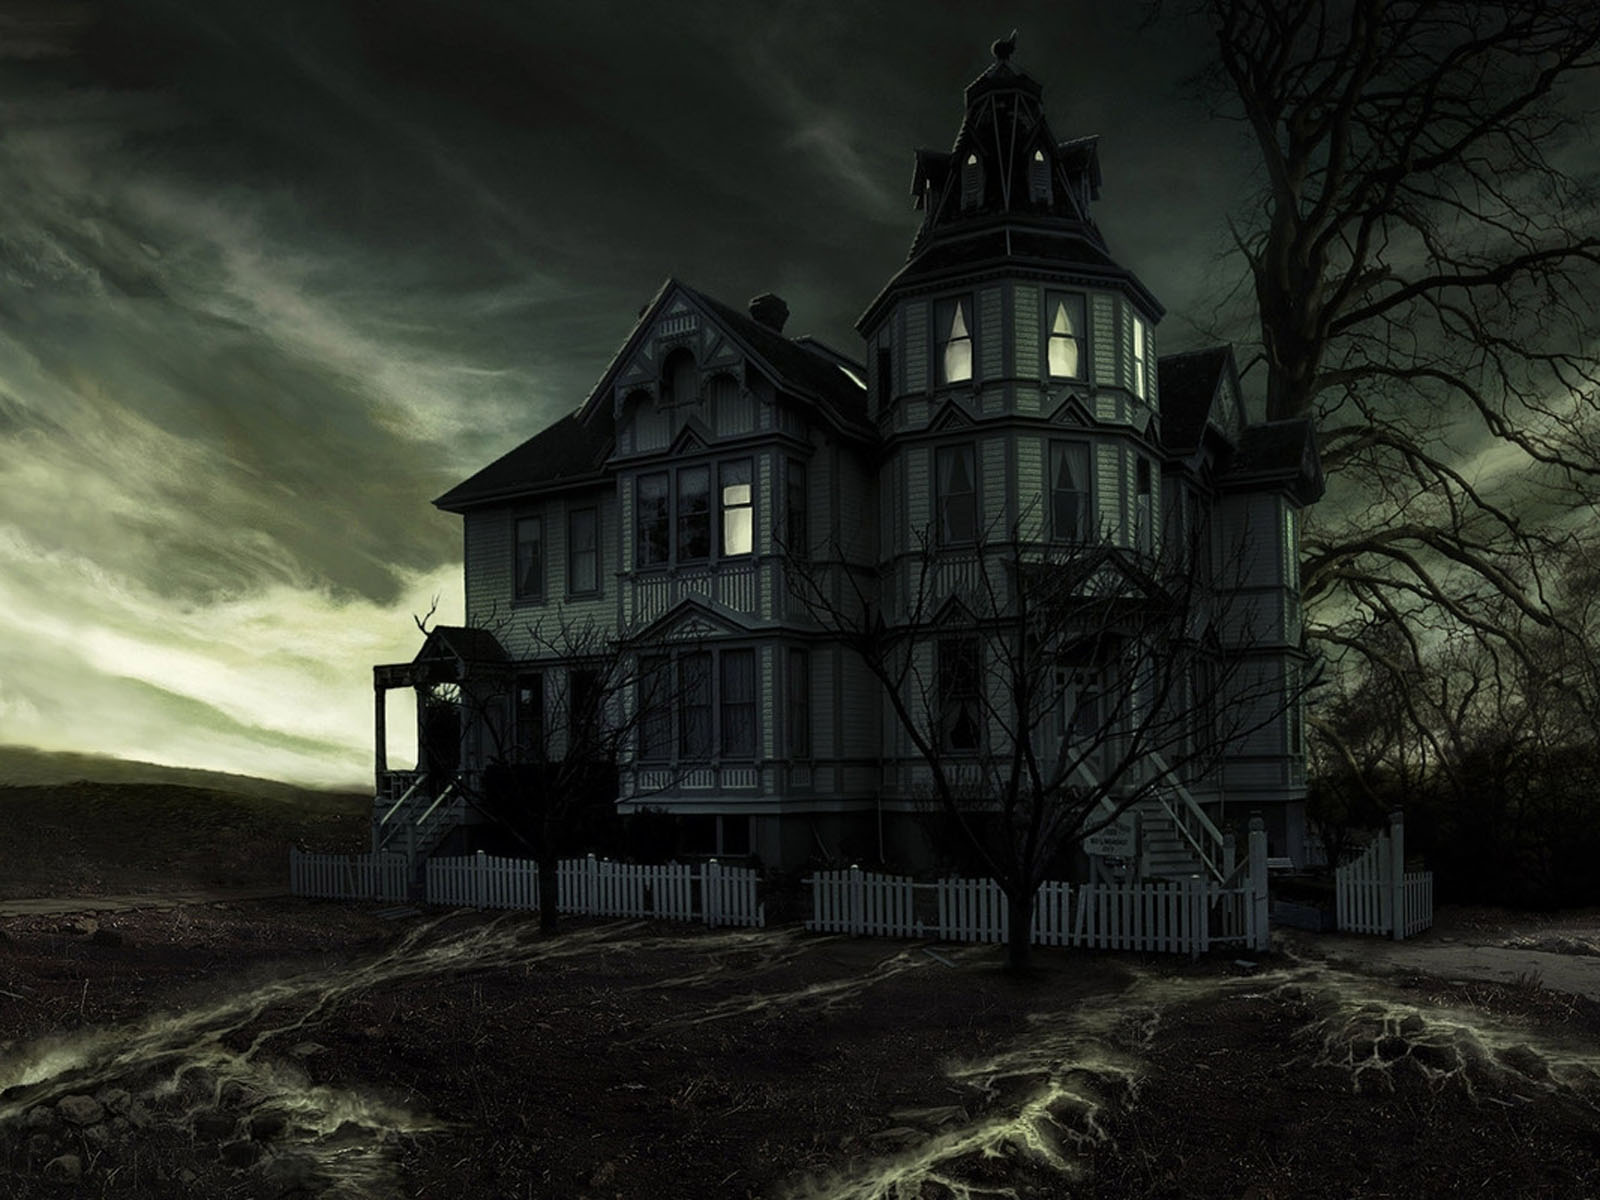 Haunted House HD black,green 1600x1200 Image